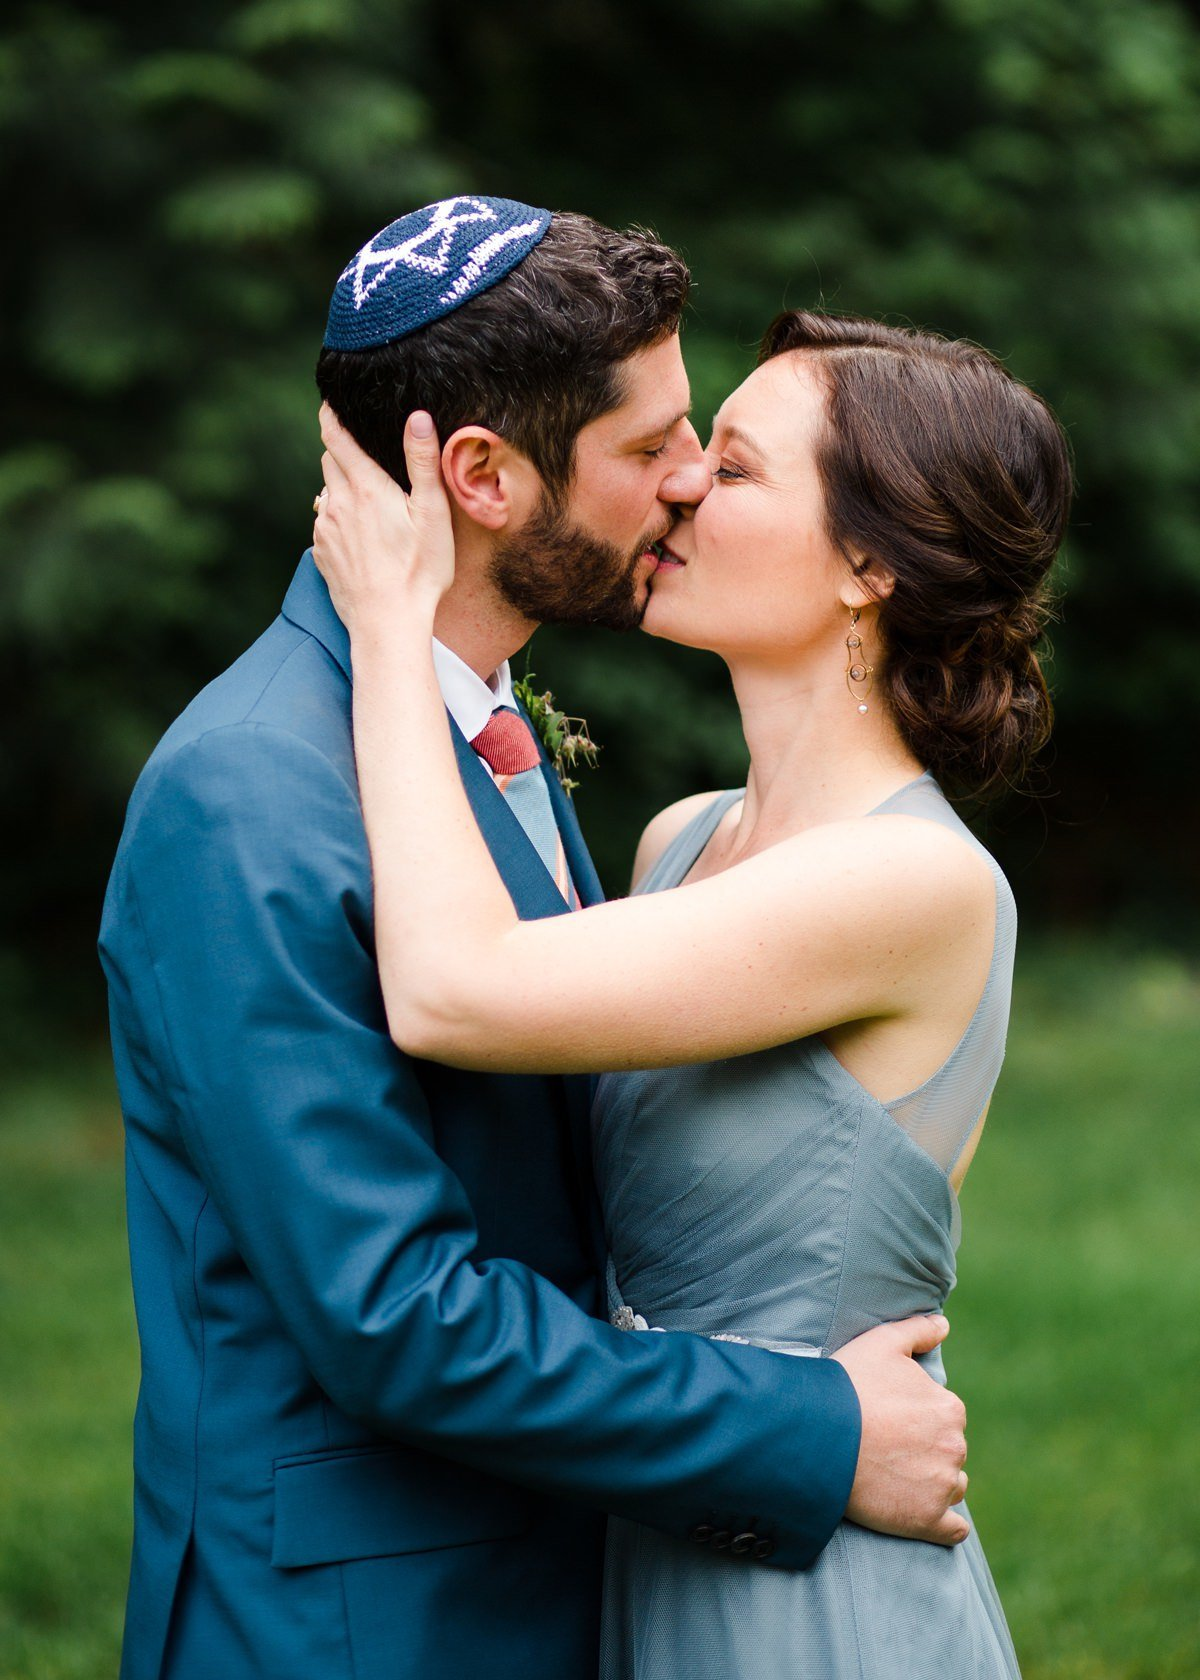 bainbridge-island-washington-wedding-photographer-cameron-zegers-25_1200